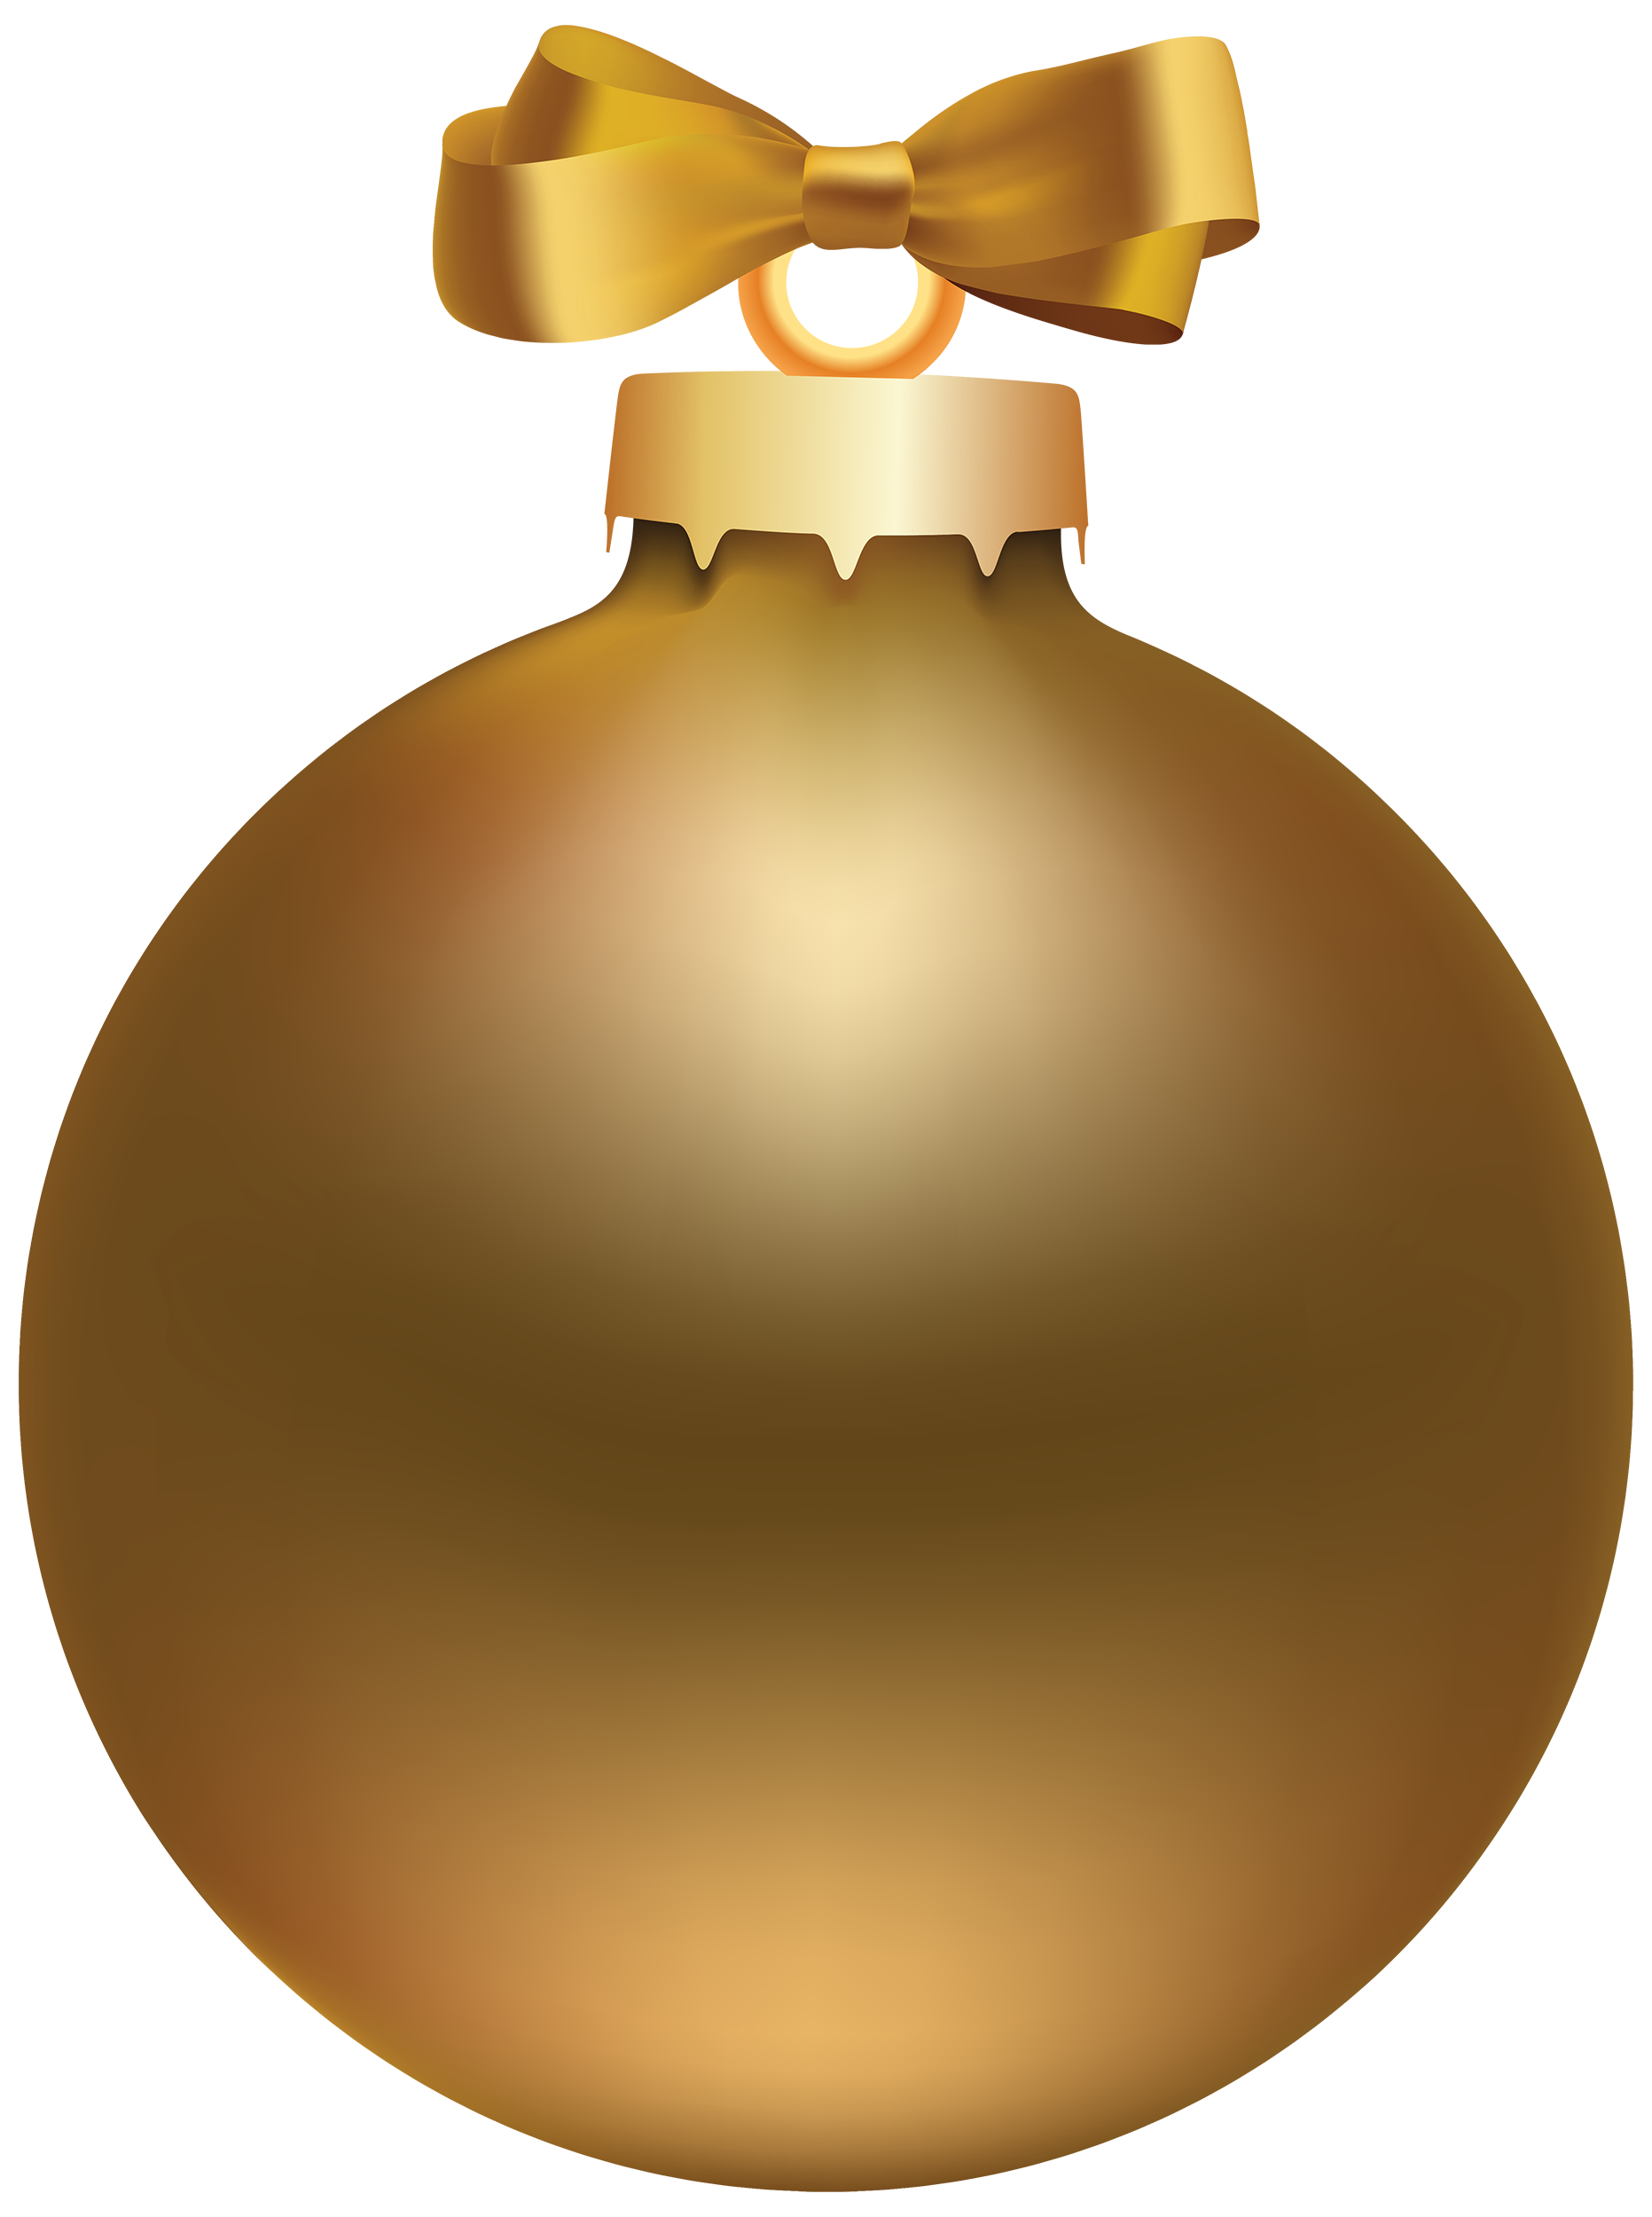 graphic transparent Style christmas ball png. Golden clipart cartoon